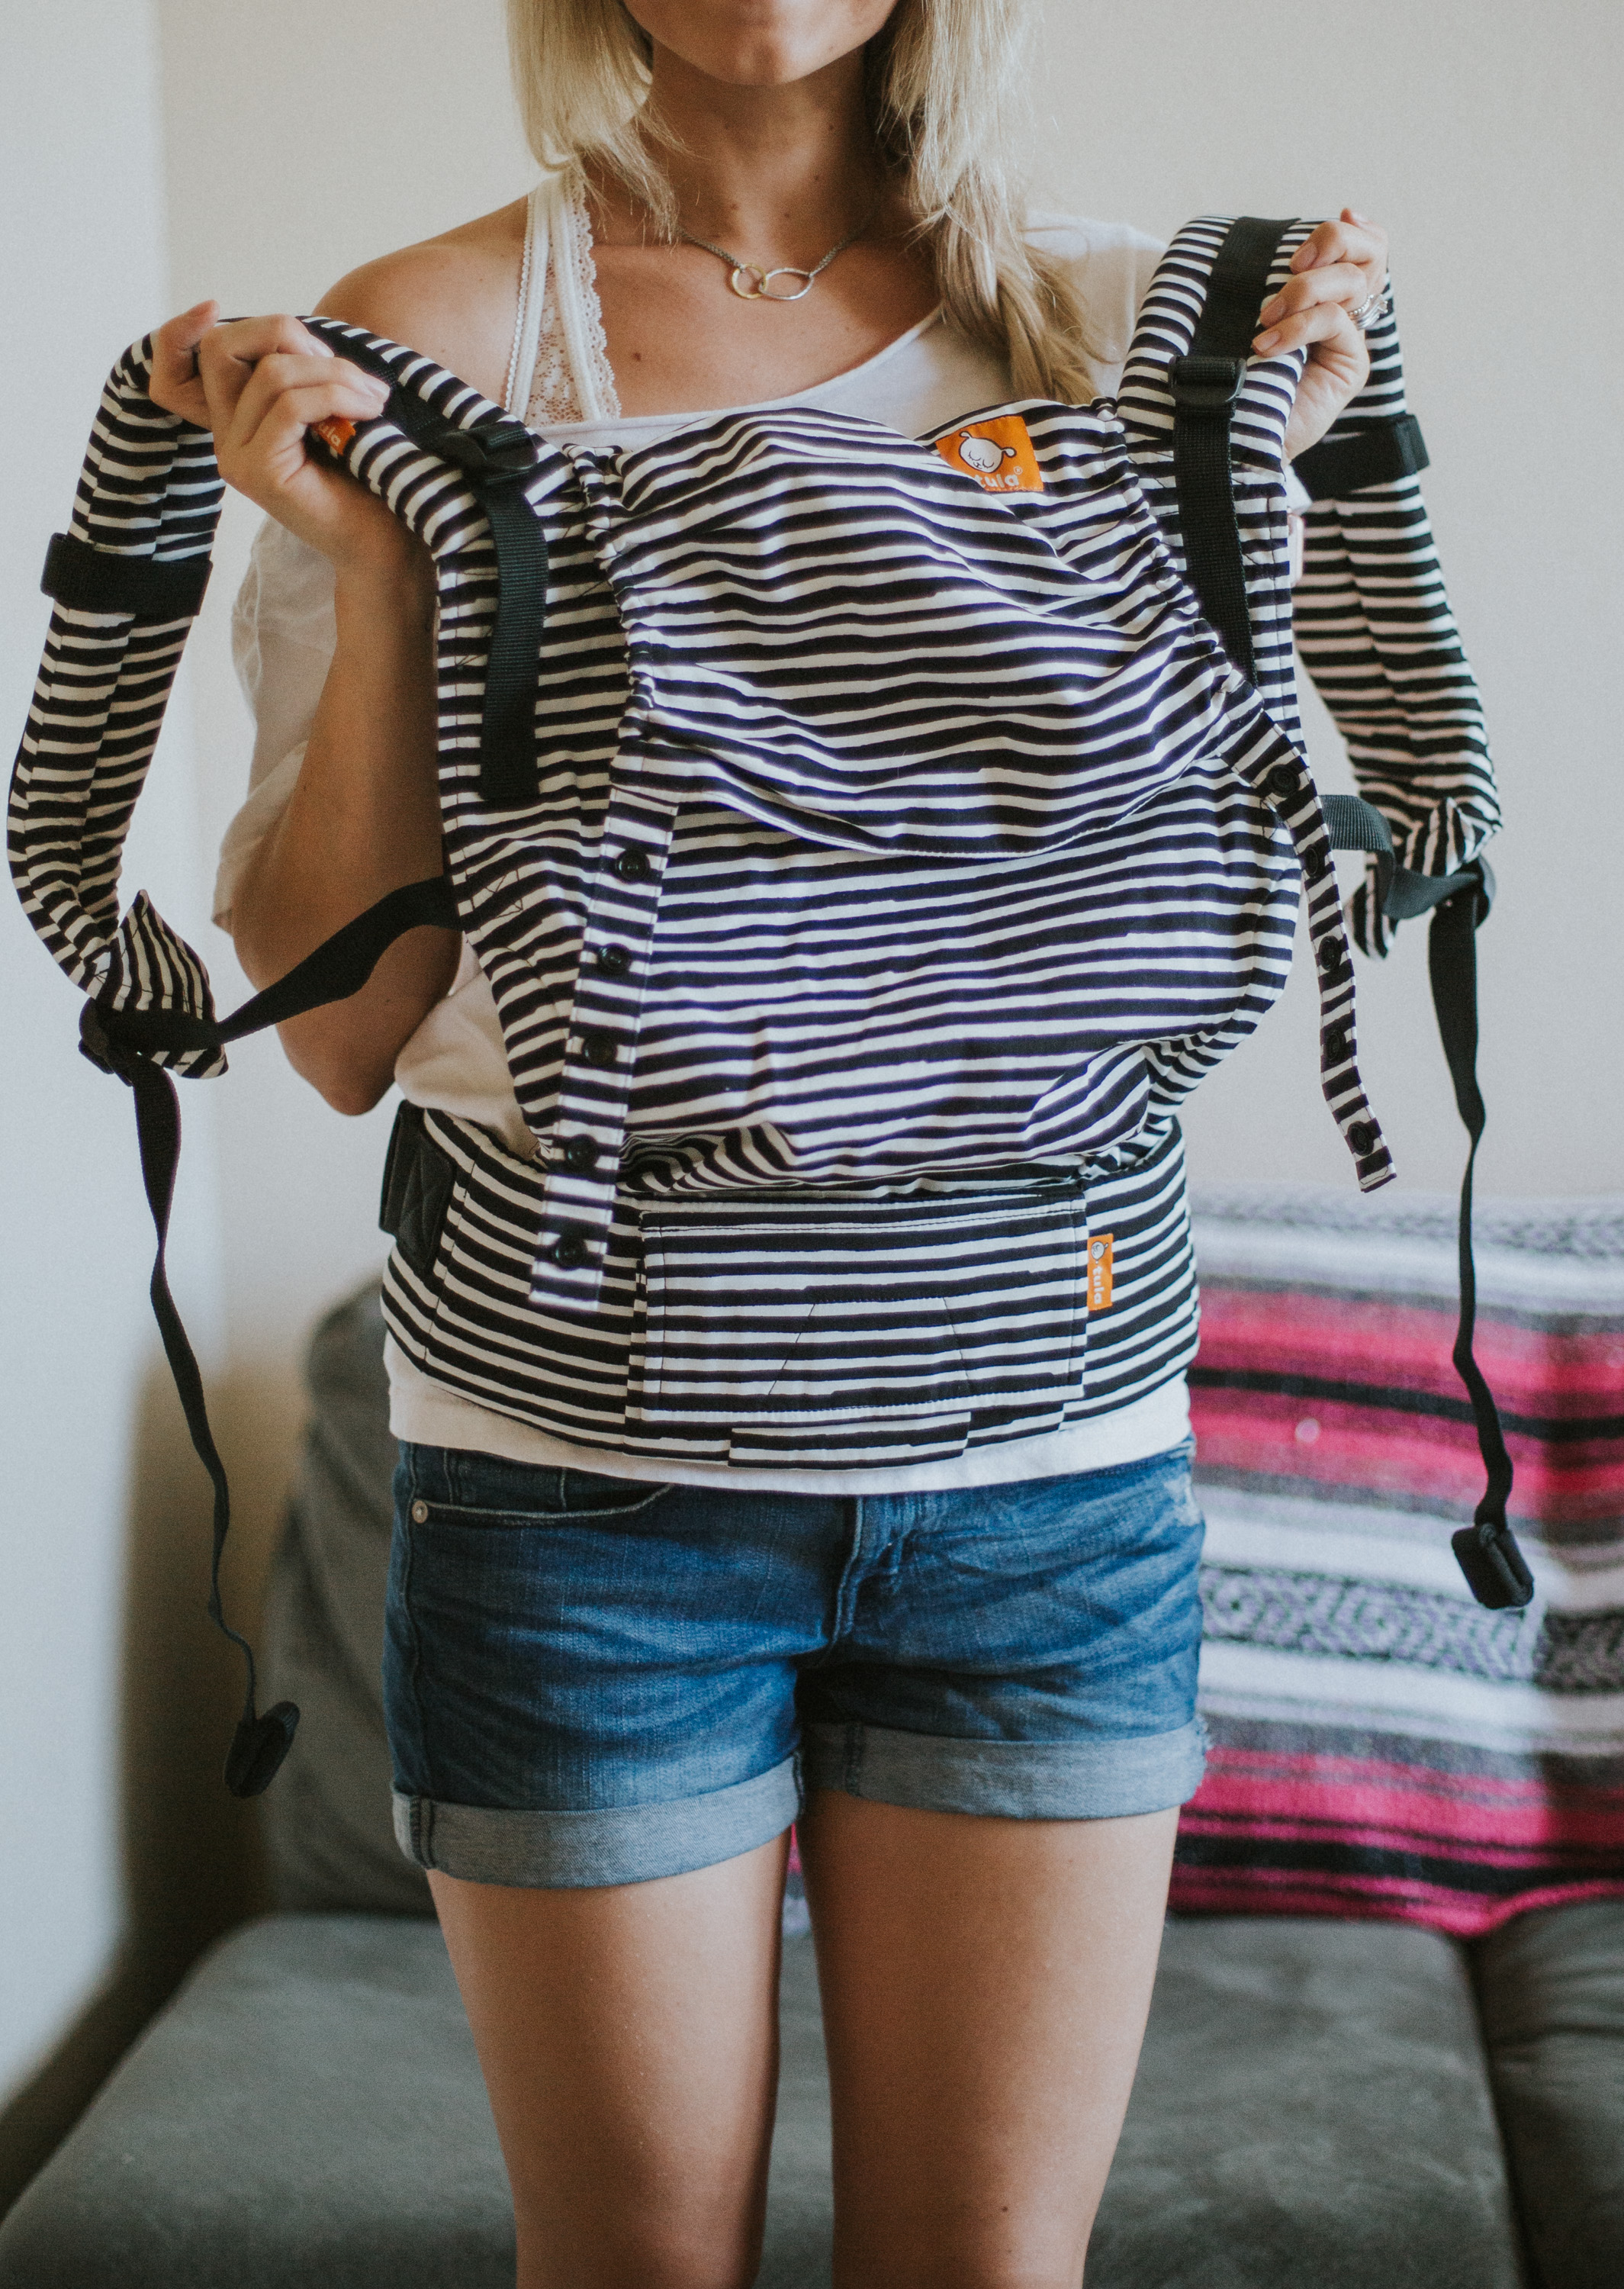 Mom blogger Larissa of Living in Color blog shares tips on how to breastfeed in a baby carrier, the Tula soft structured baby carrier. Read more now.